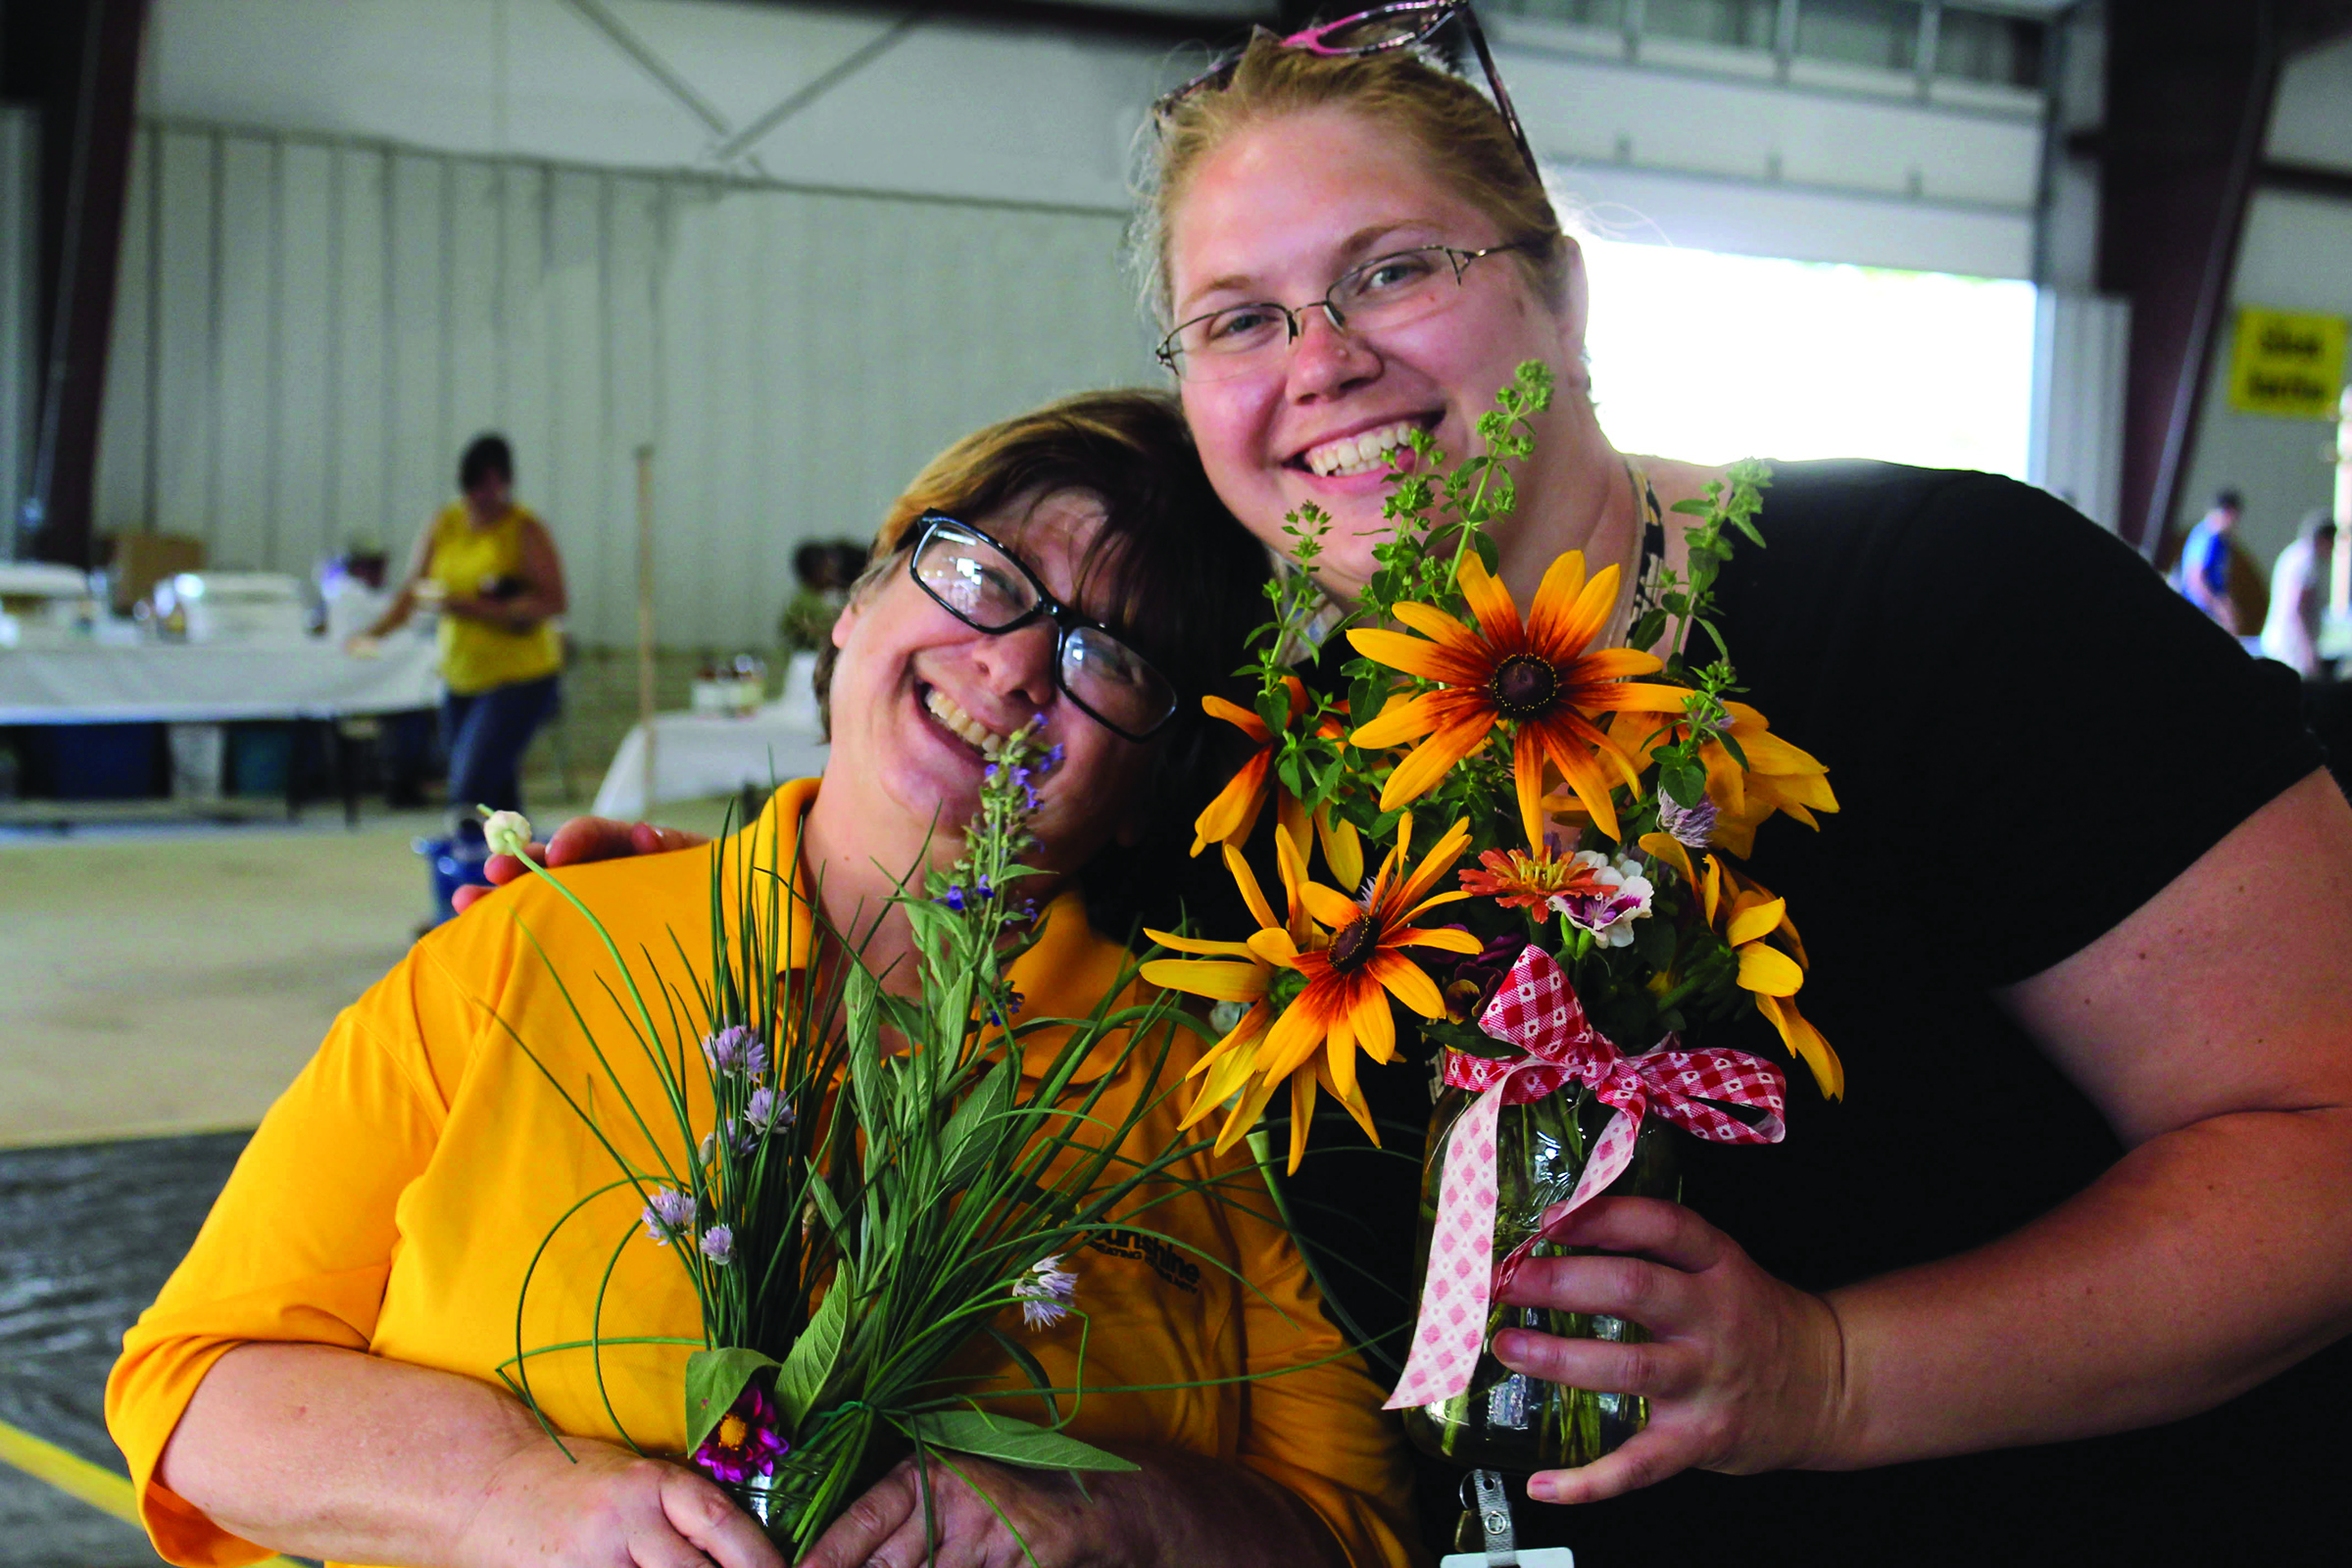 Sara Lewis (Right) who works with our greenhouse crew, and one of the members of the greenhouse crew Miss Lynn (Left)